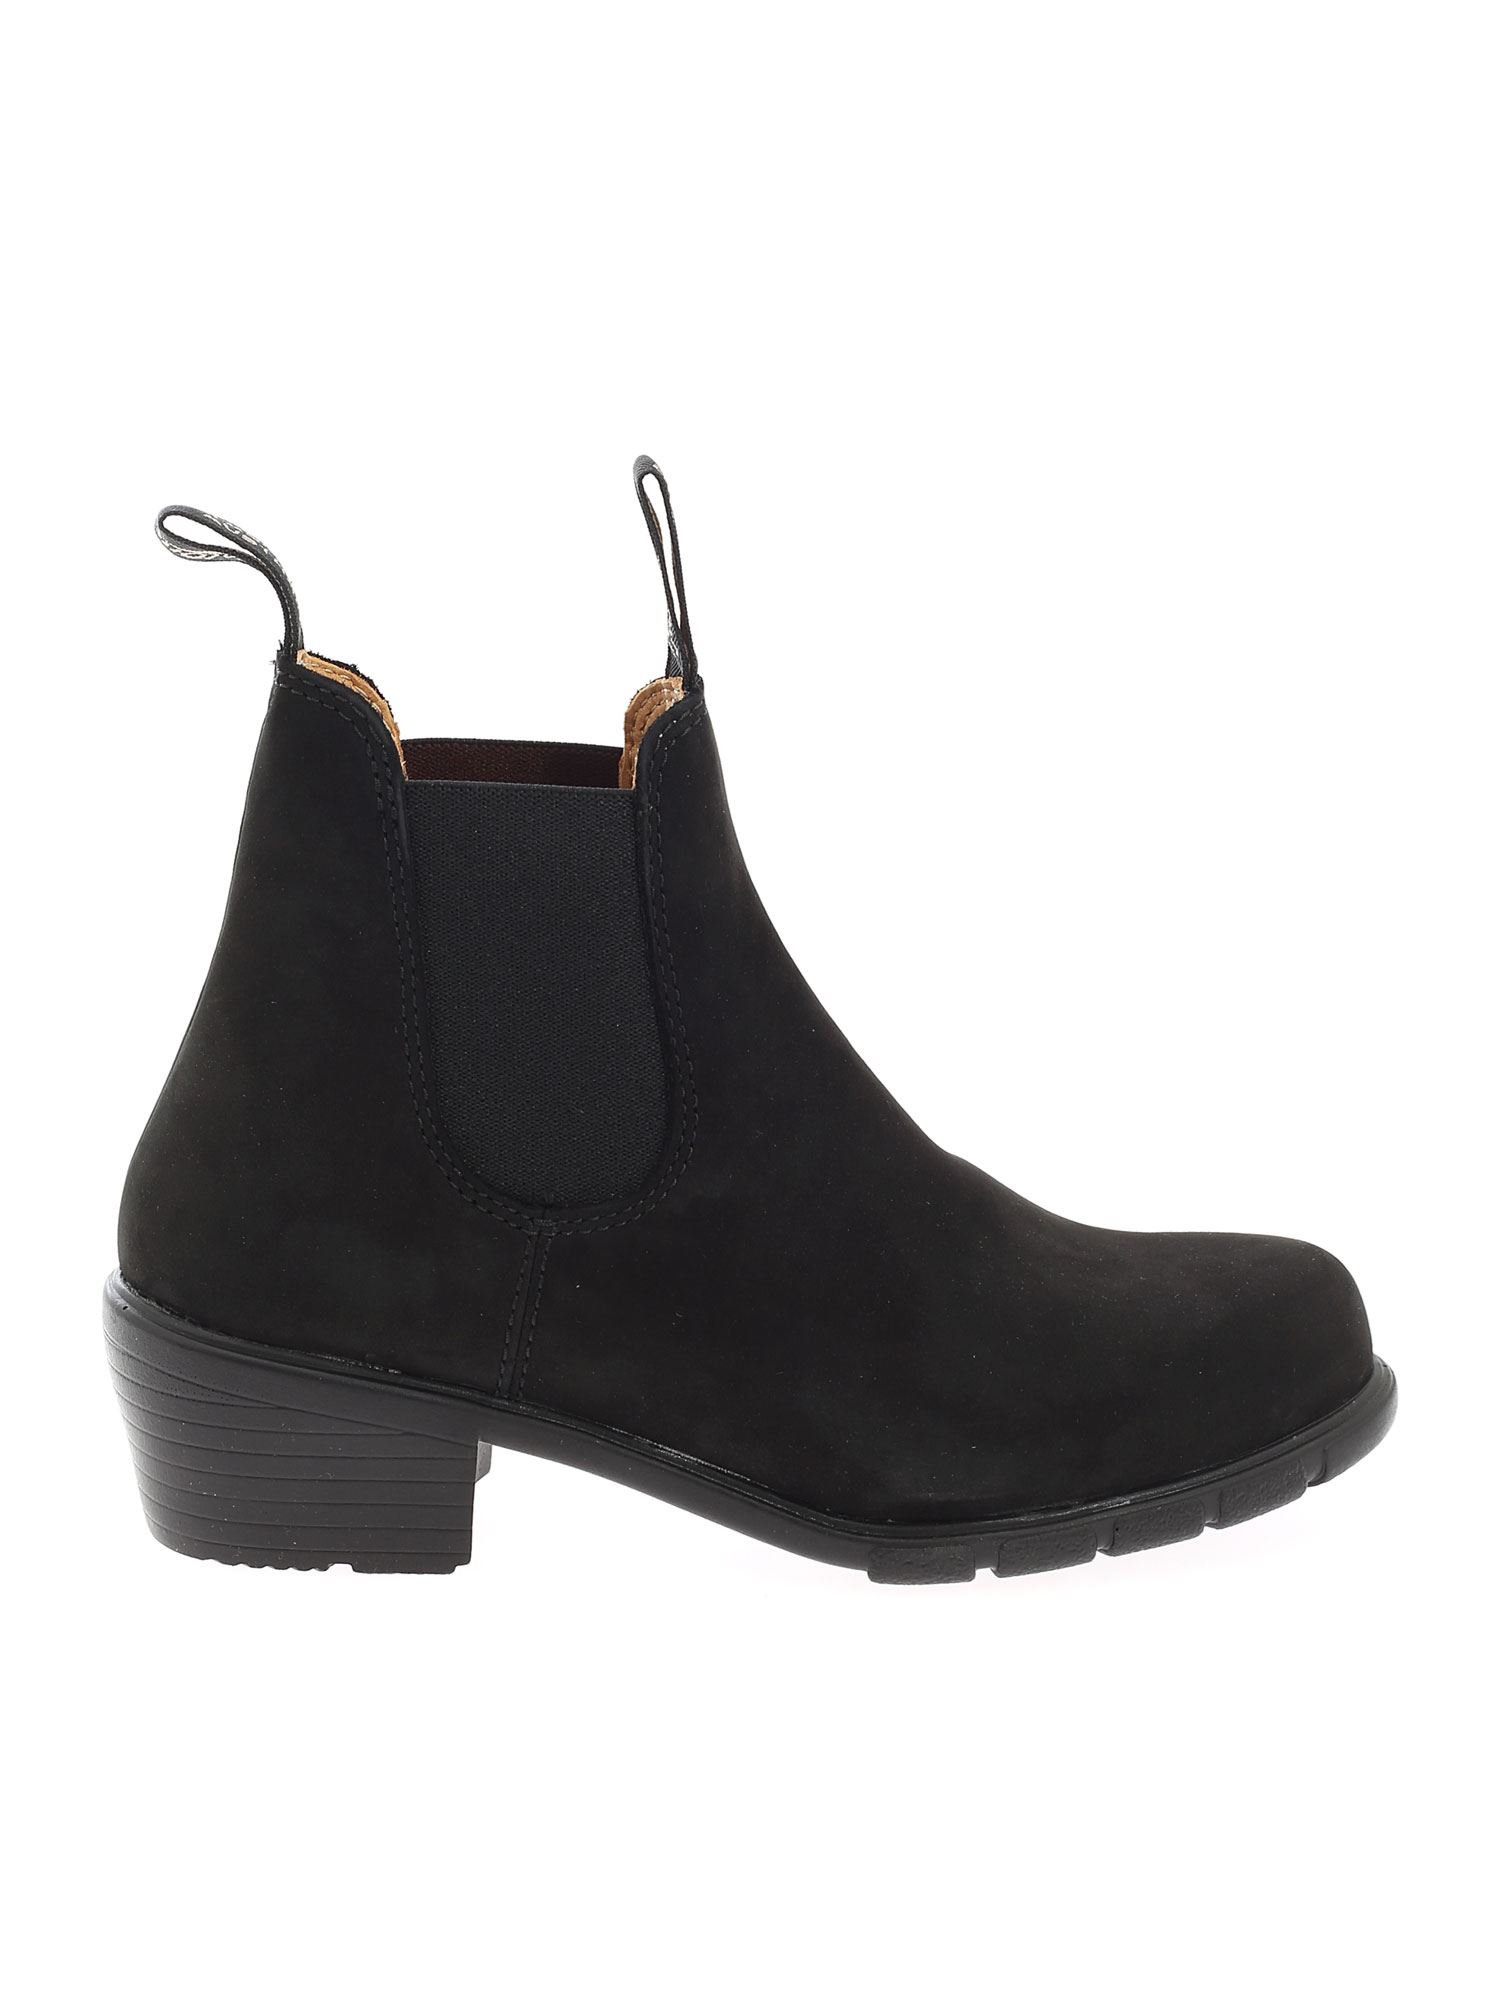 Blundstone ANKLE BOOT WITH ELASTIC INSERTS IN BLACK